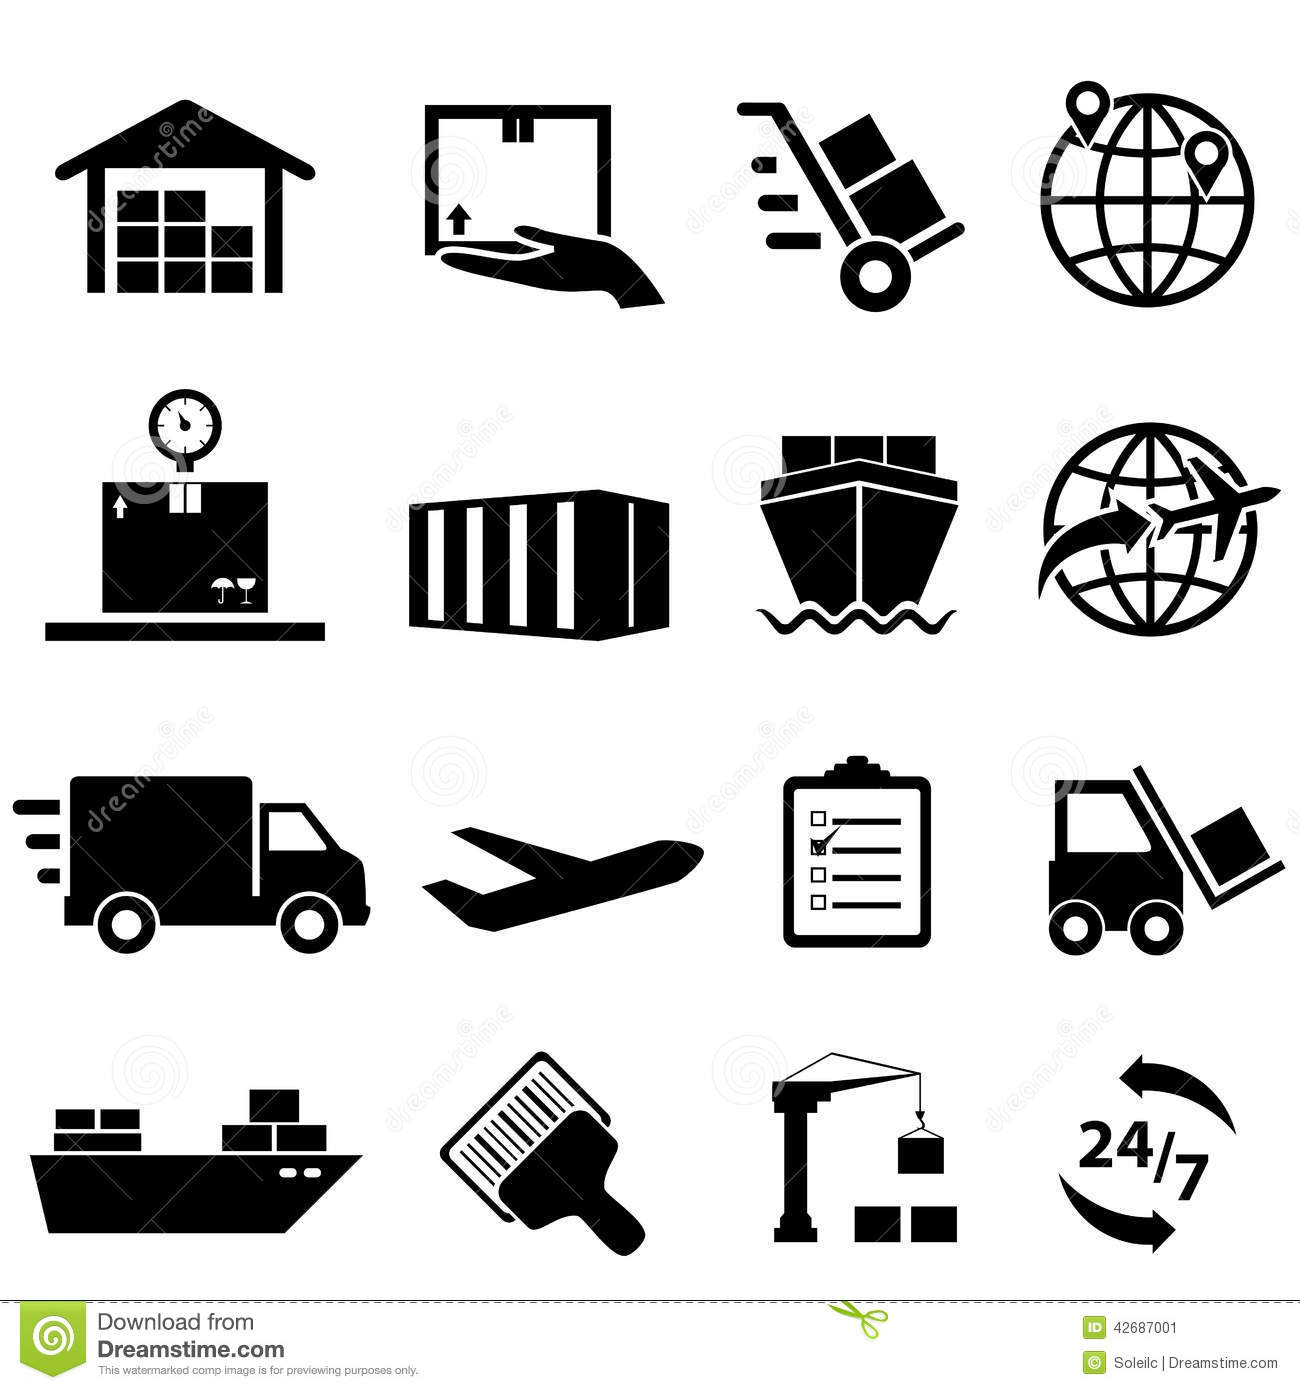 Shipping And Logistics Icons Stock Vector - Image: 42687001